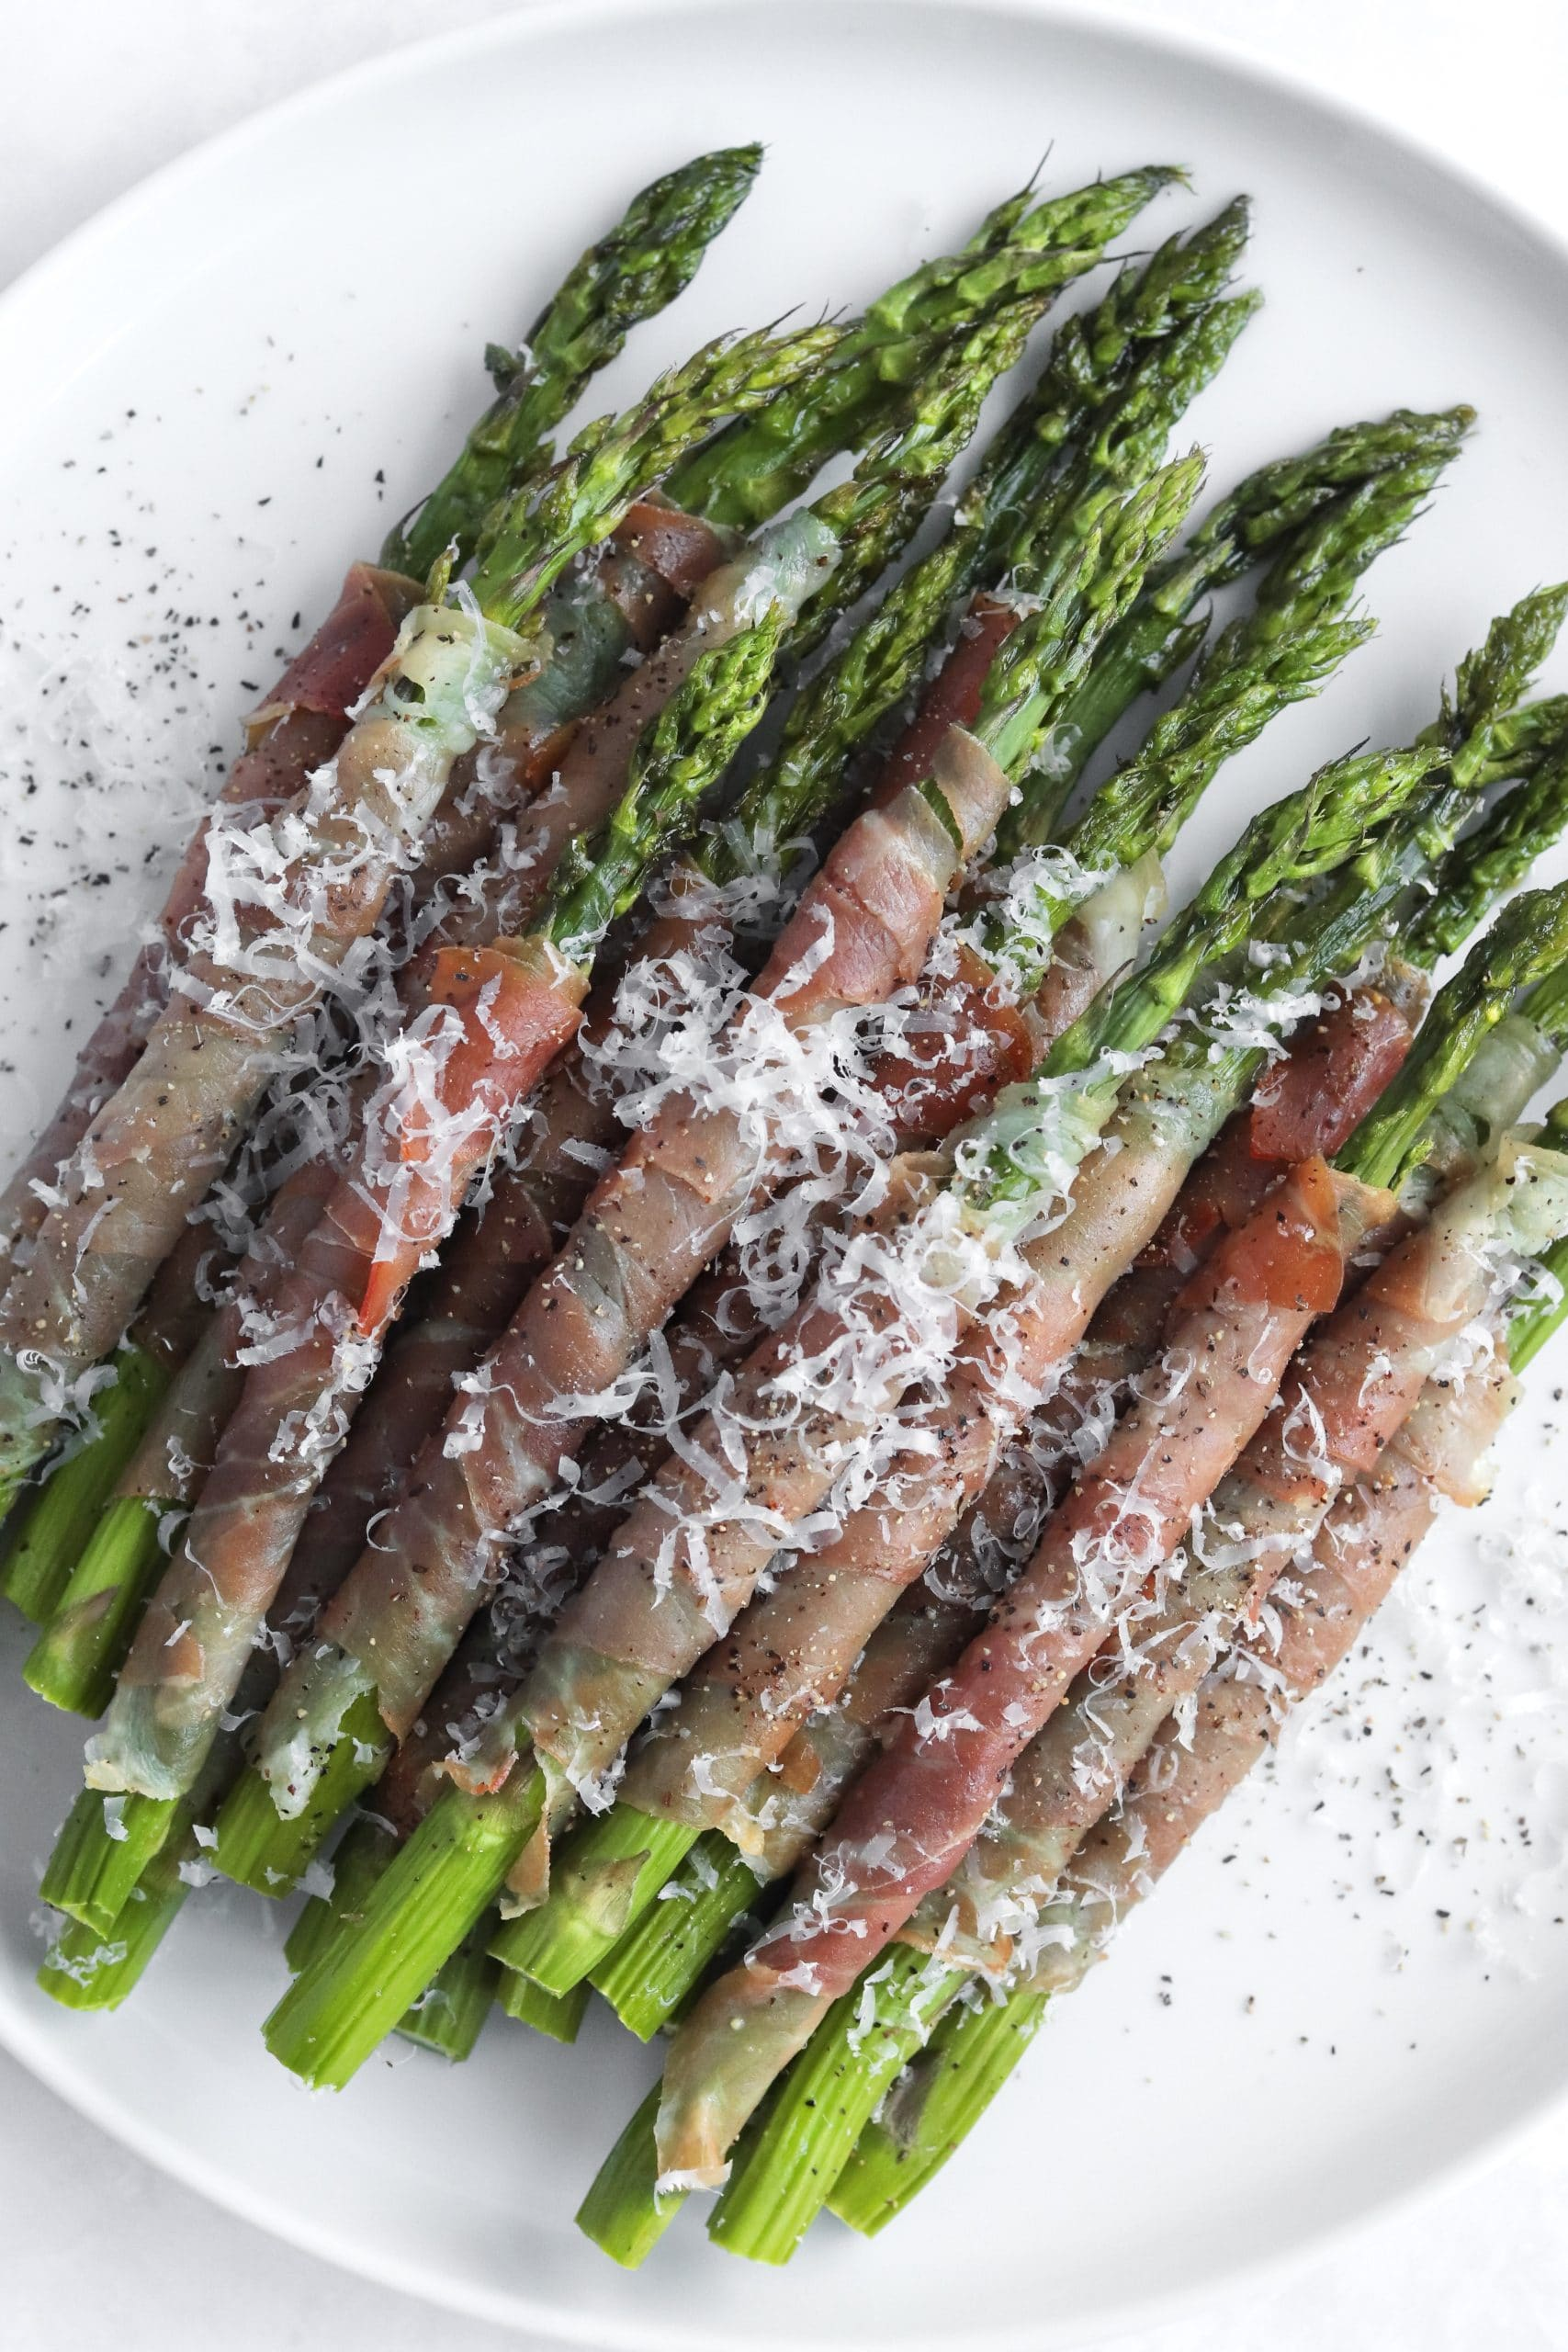 Prosciutto wrapped asparagus on a plate with parmesan cheese